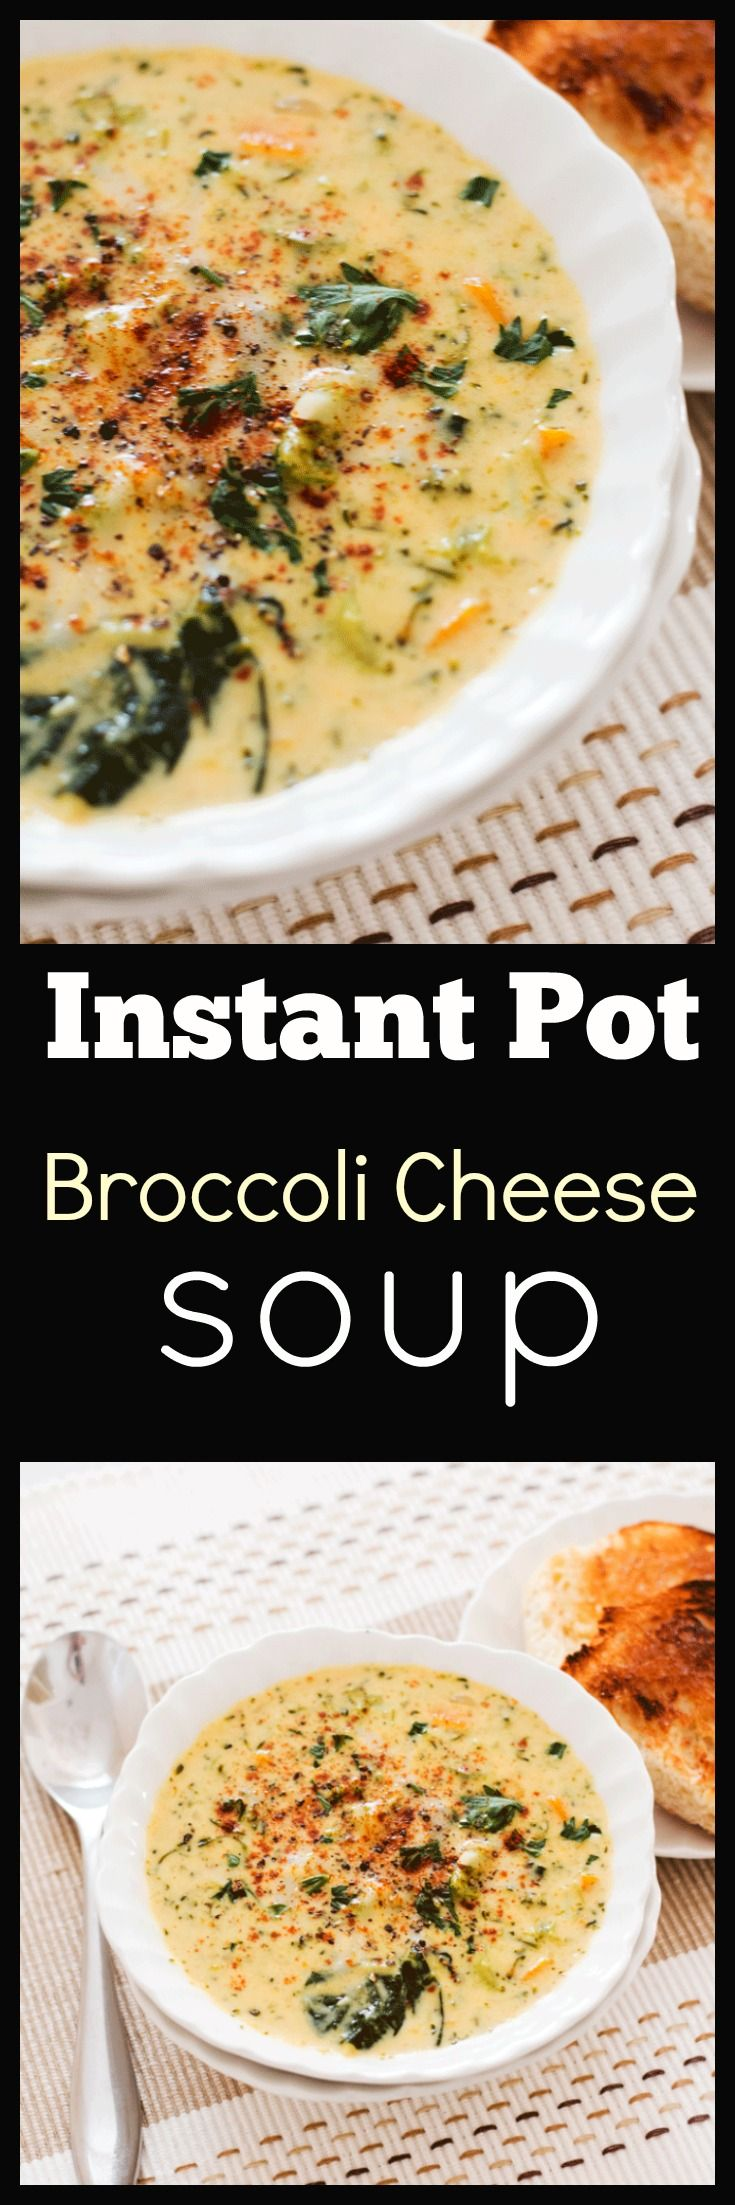 Instant Pot Broccoli Cheese Soup Recipe Cheese Soup Broccoli Cheese Soup Instant Pot